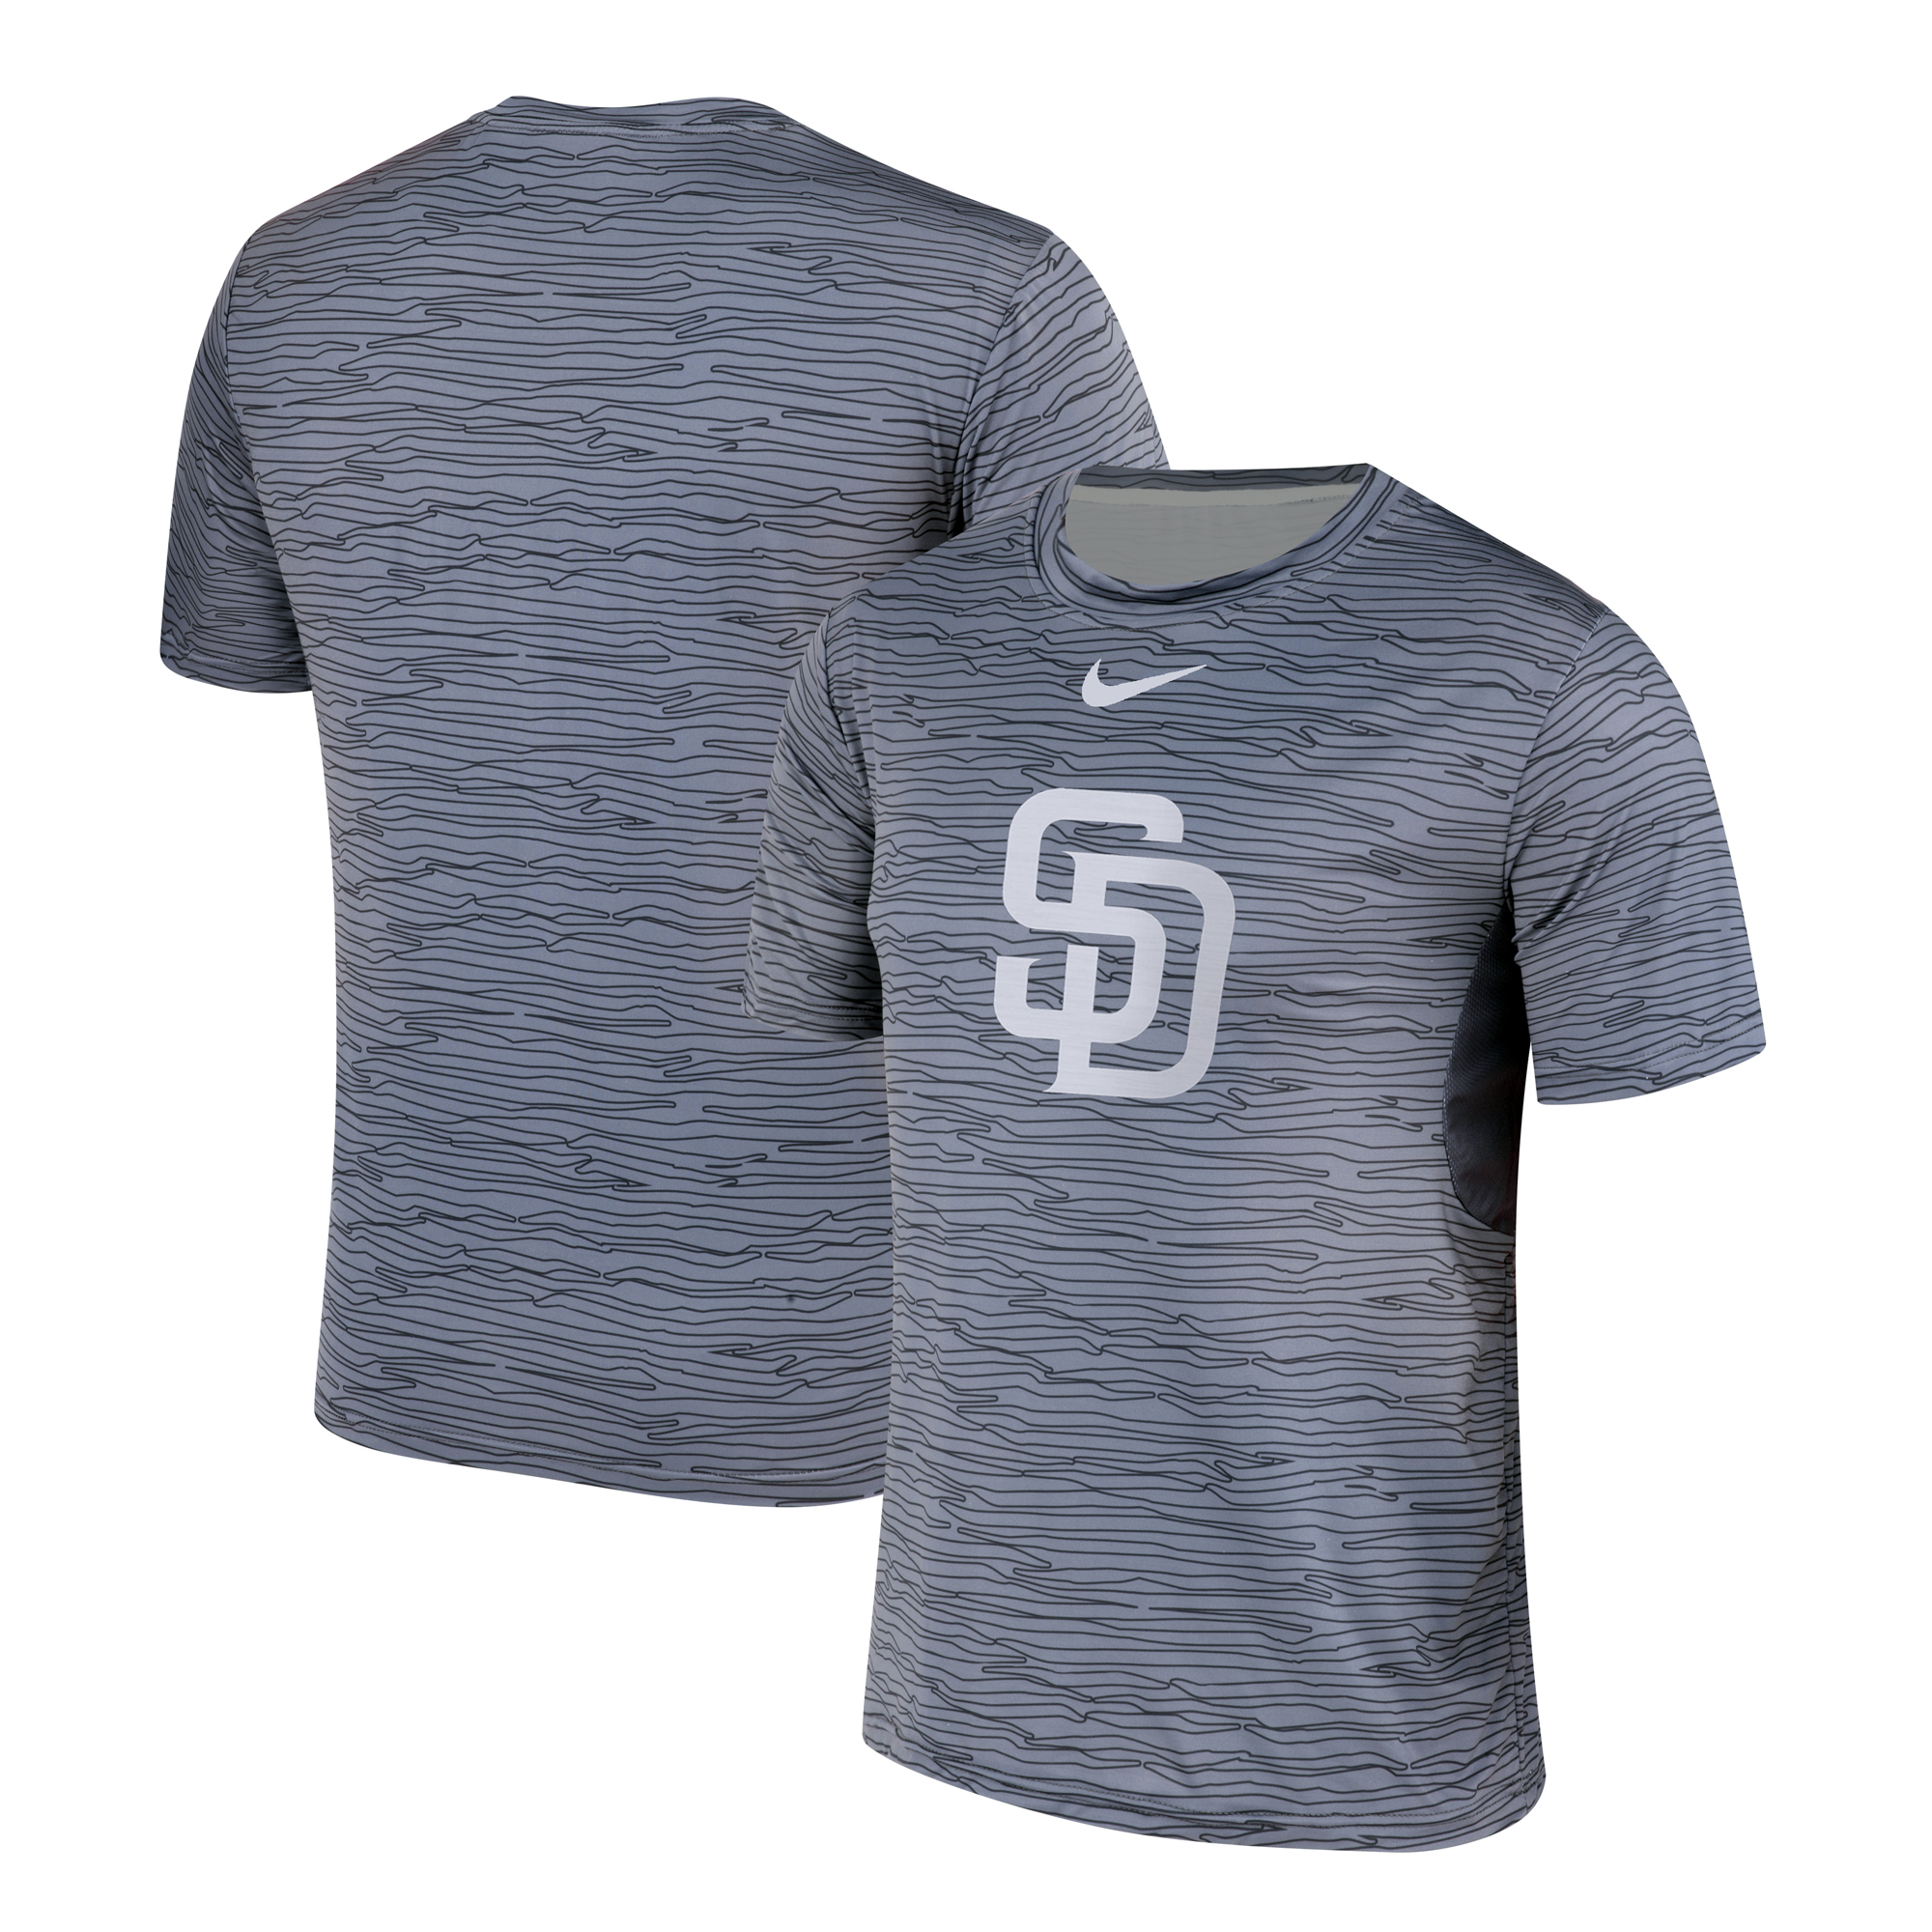 Nike San Diego Padres Gray Black Striped Logo Performance T-Shirt